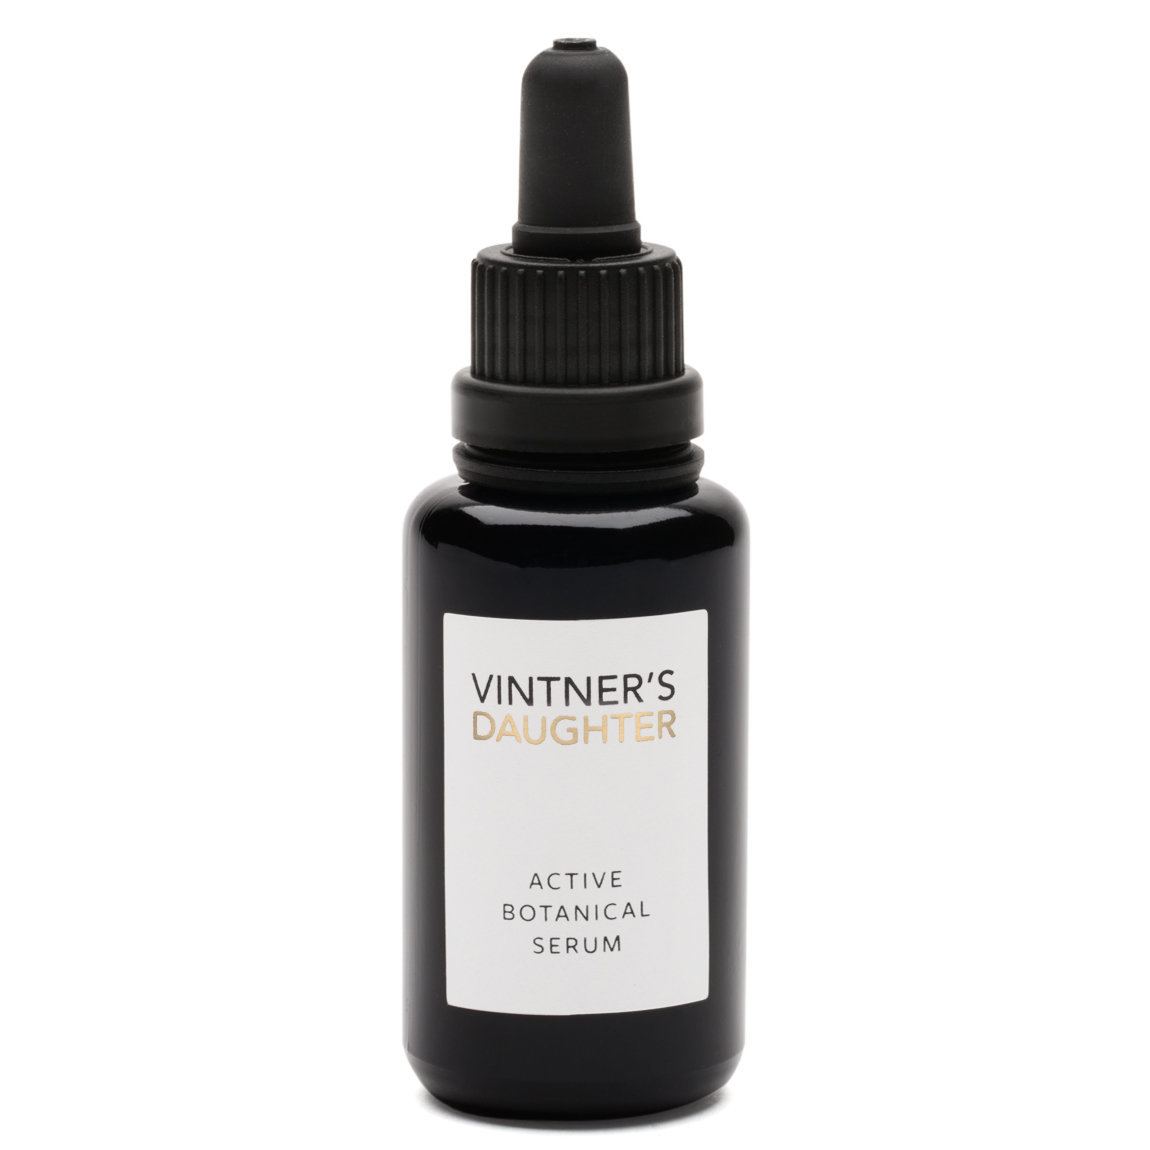 Vintner's Daughter Active Botanical Serum product smear.